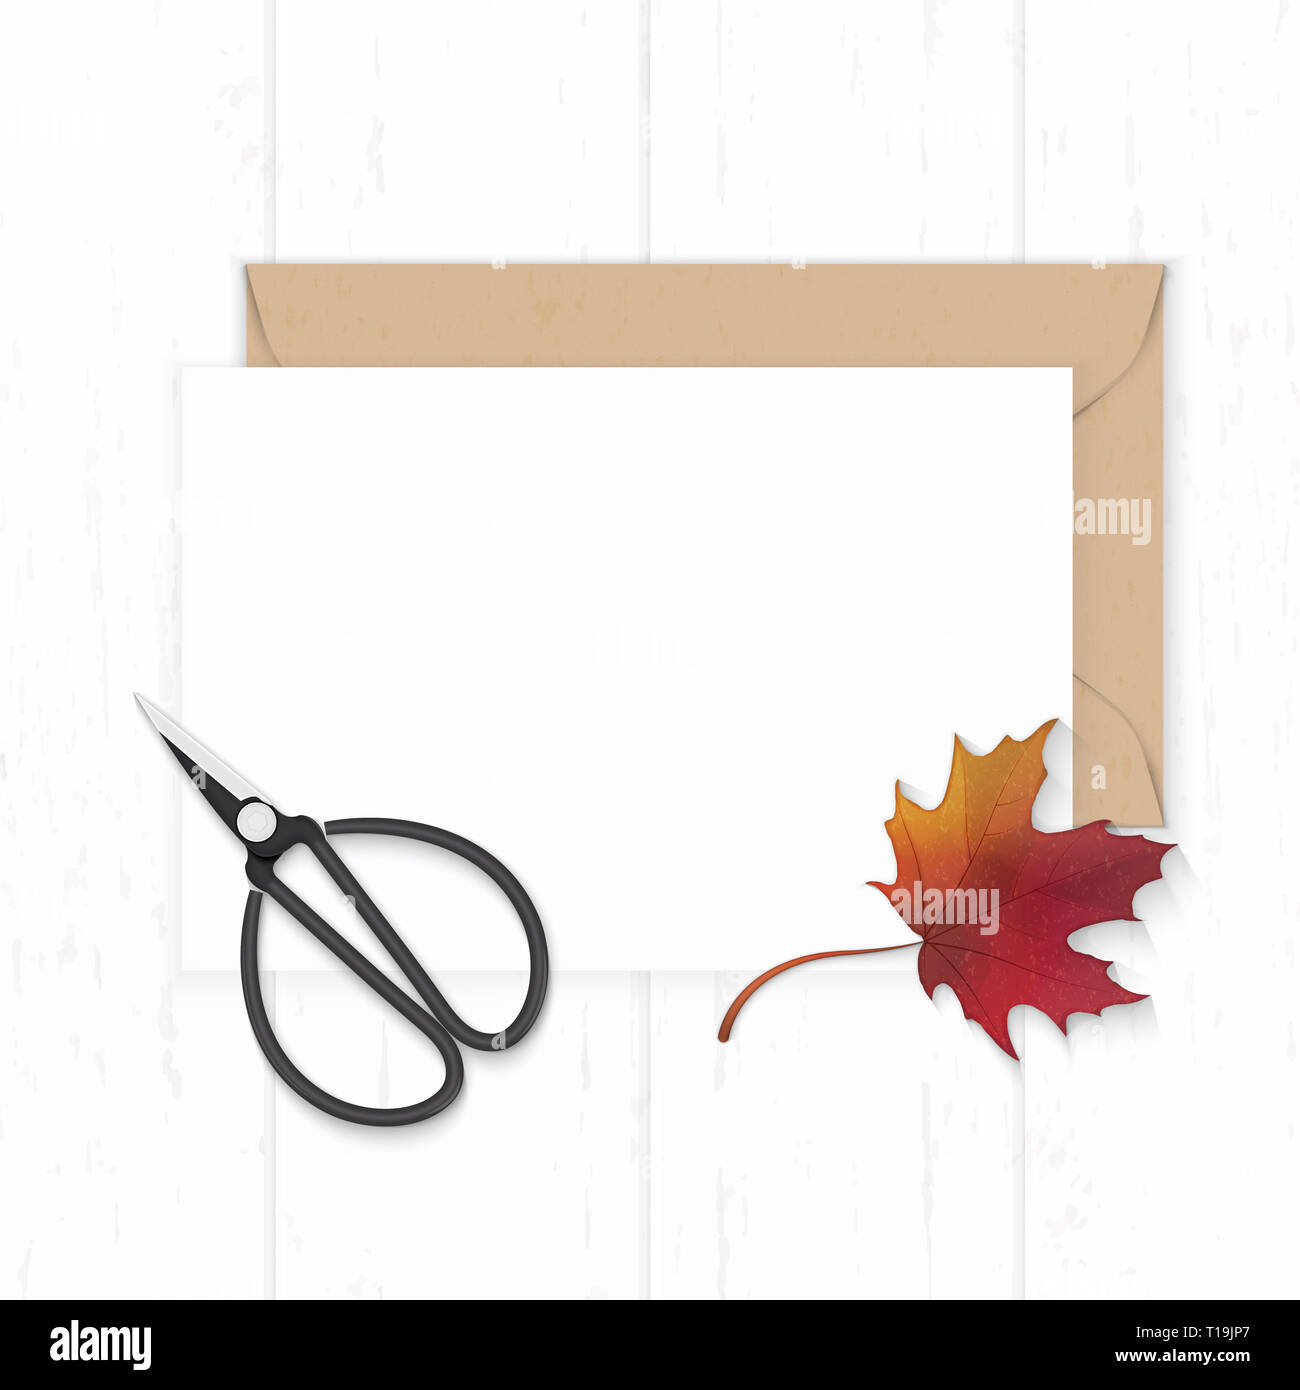 Flat lay top view elegant white composition paper kraft envelope autumn red maple leaf and vintage metal scissors on wooden background. Stock Photo